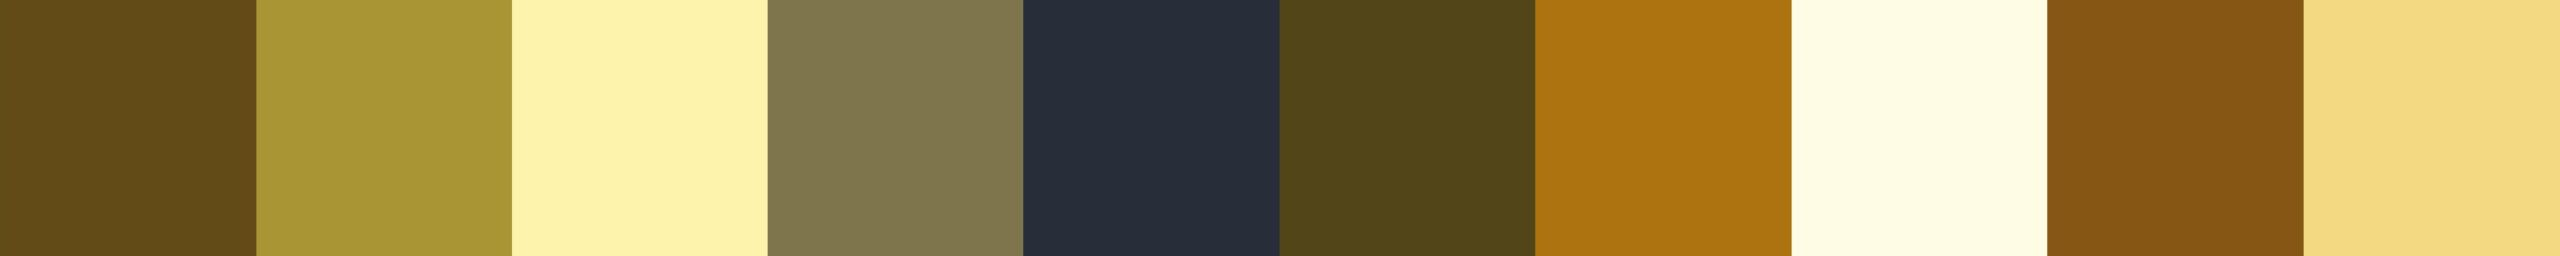 339 Arvapia Color Palette